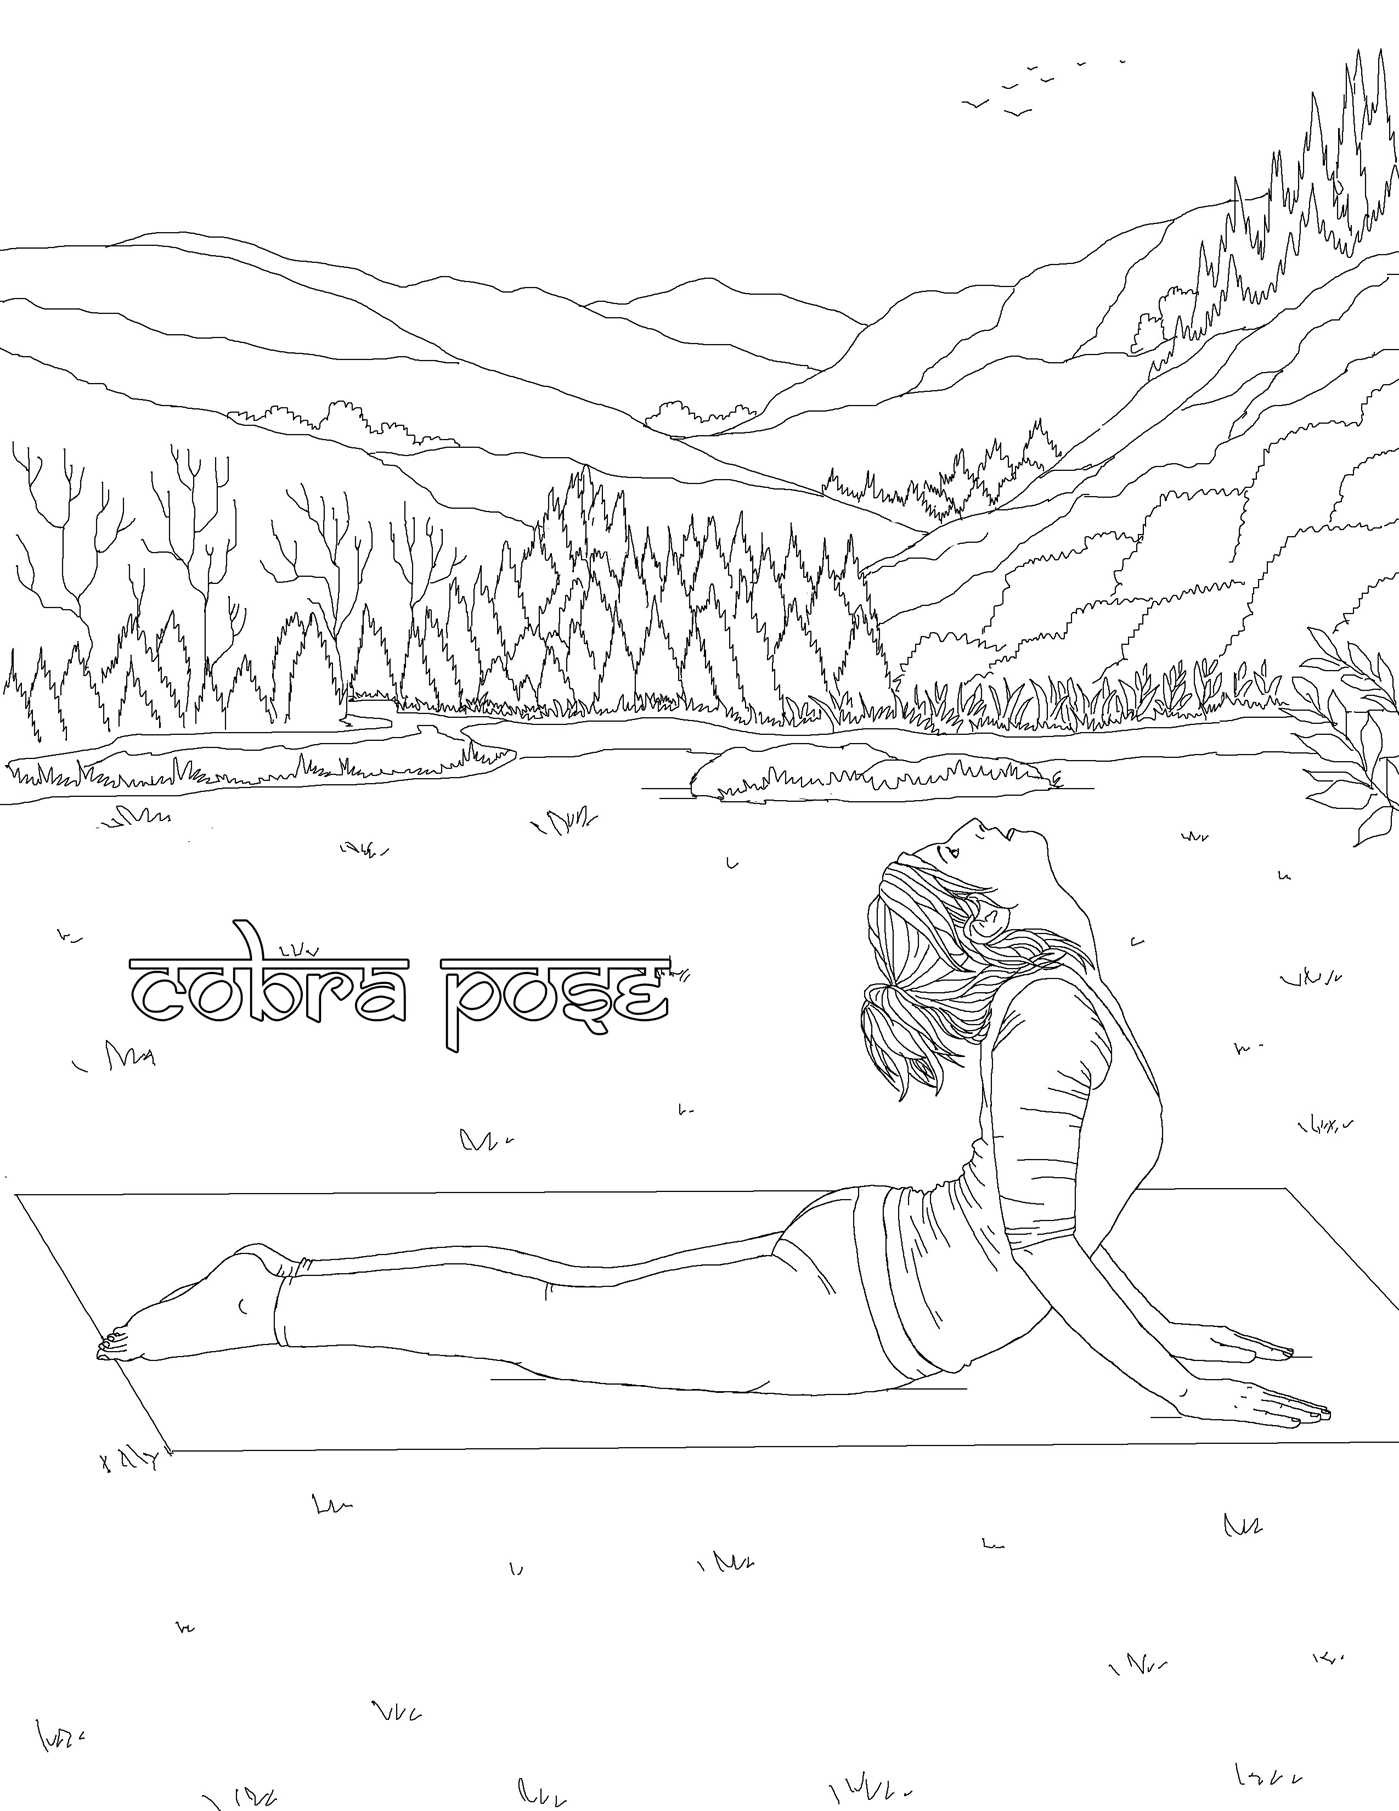 The Yoga Poses Adult Coloring Book | Book by M. G. Anthony ...